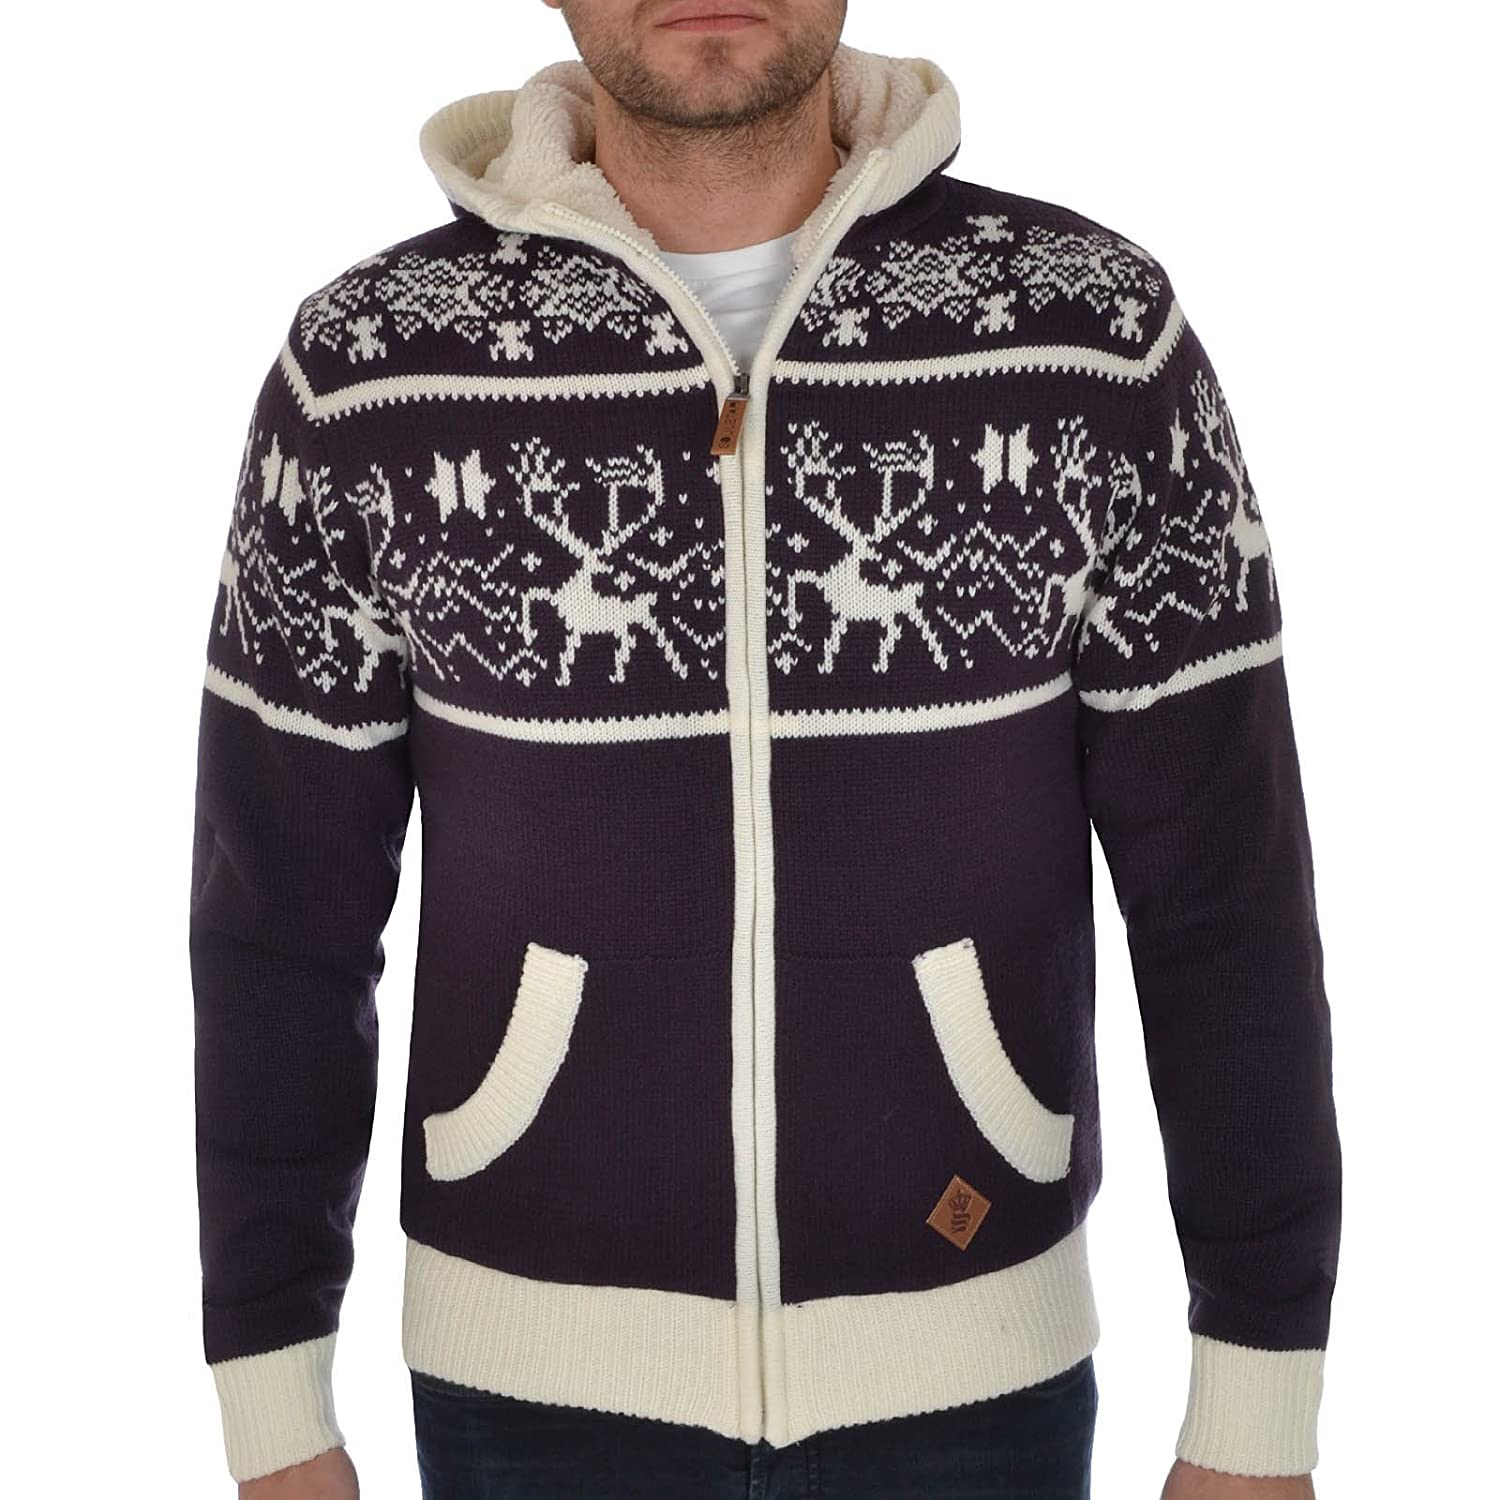 Soul Star Mens Zip up Hooded Christmas Cardigan